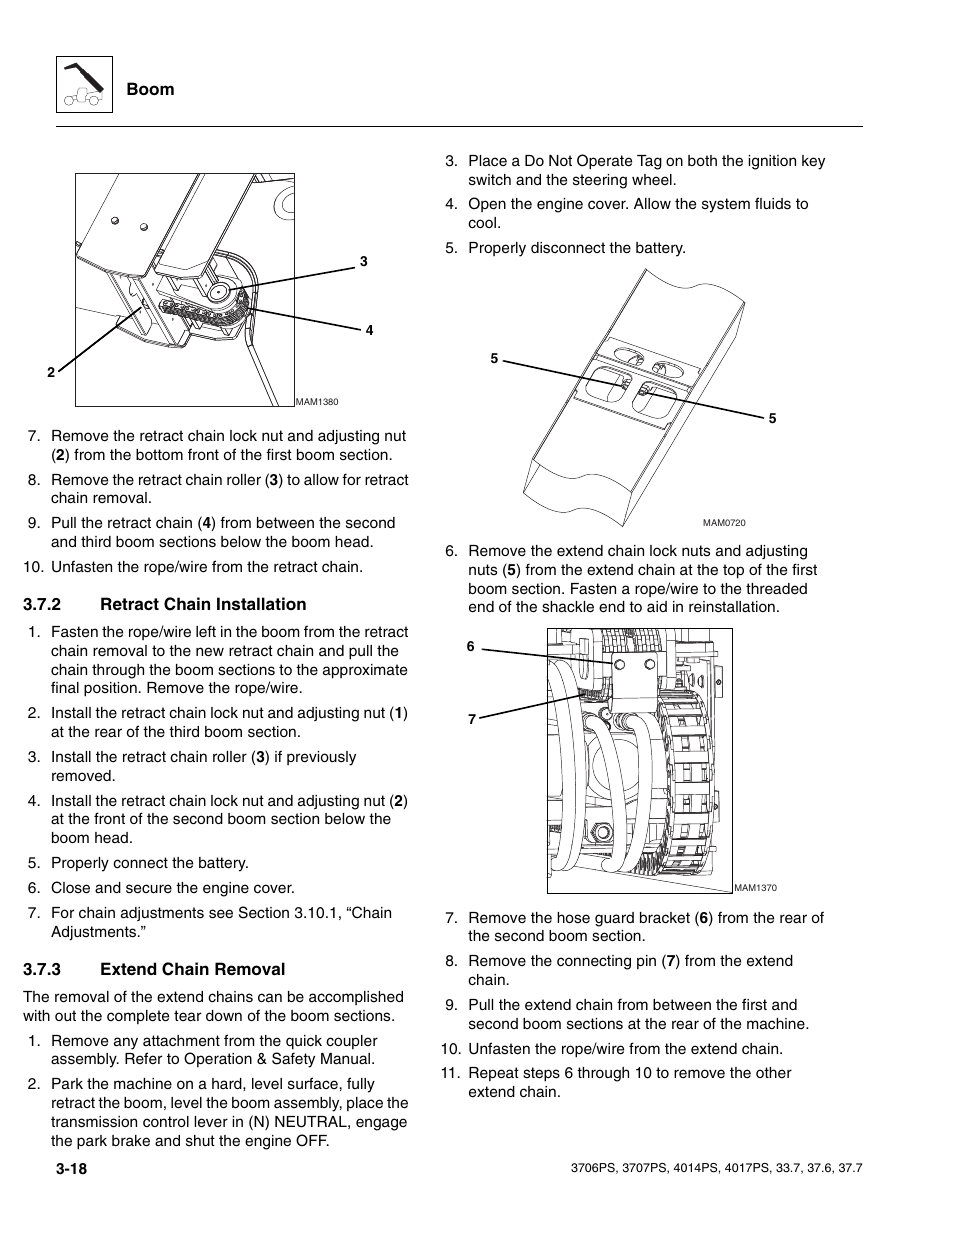 medium resolution of 2 retract chain installation 3 extend chain removal retract chain installation jlg 4017ps service manual user manual page 56 264